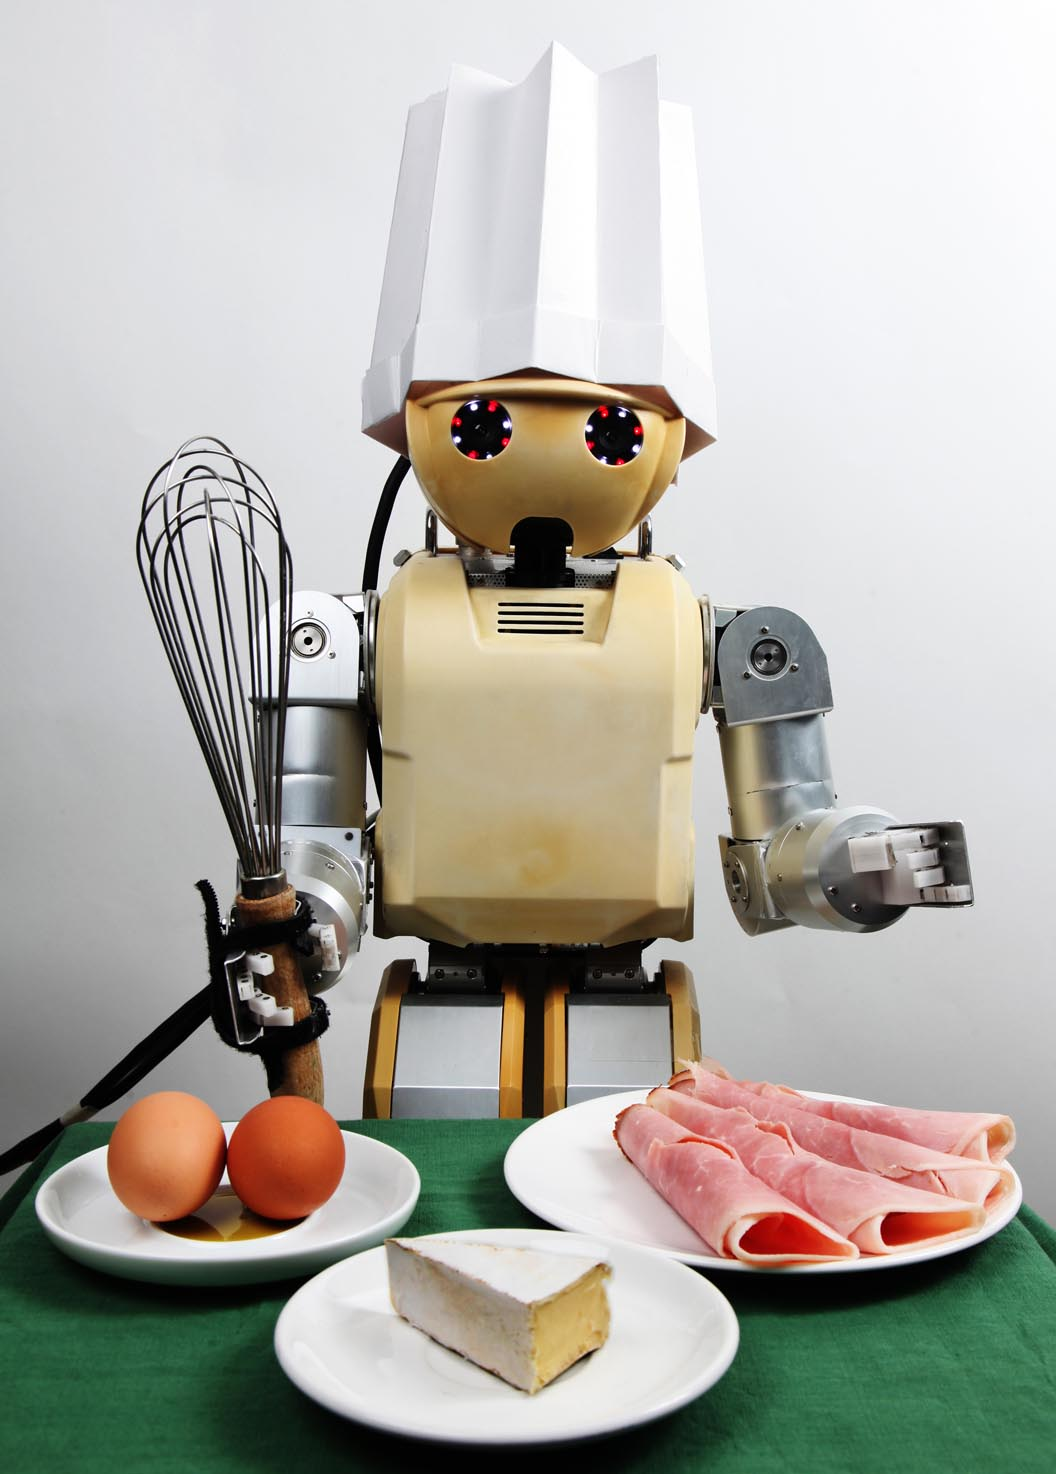 Youtube Cooking: Robots Able To Learn How To Cook Simply By Watching